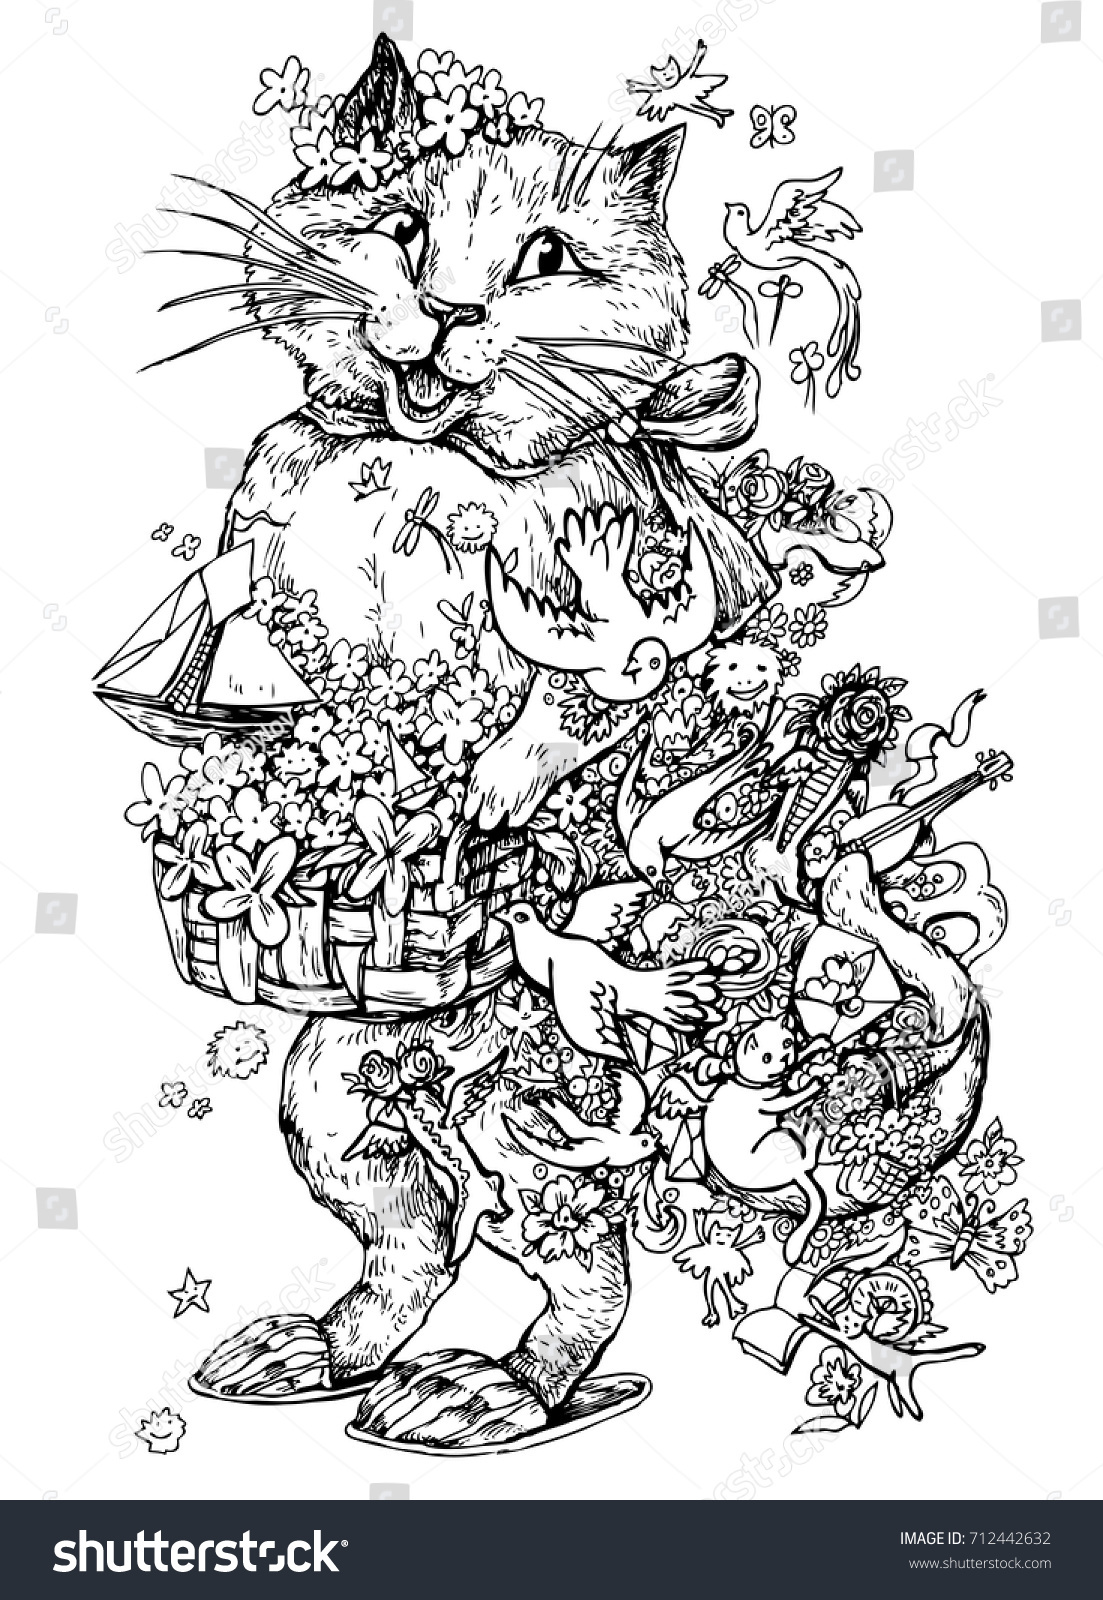 Drawing Of A Cat With Basket Flowers In The Style Zentangle For Colouring